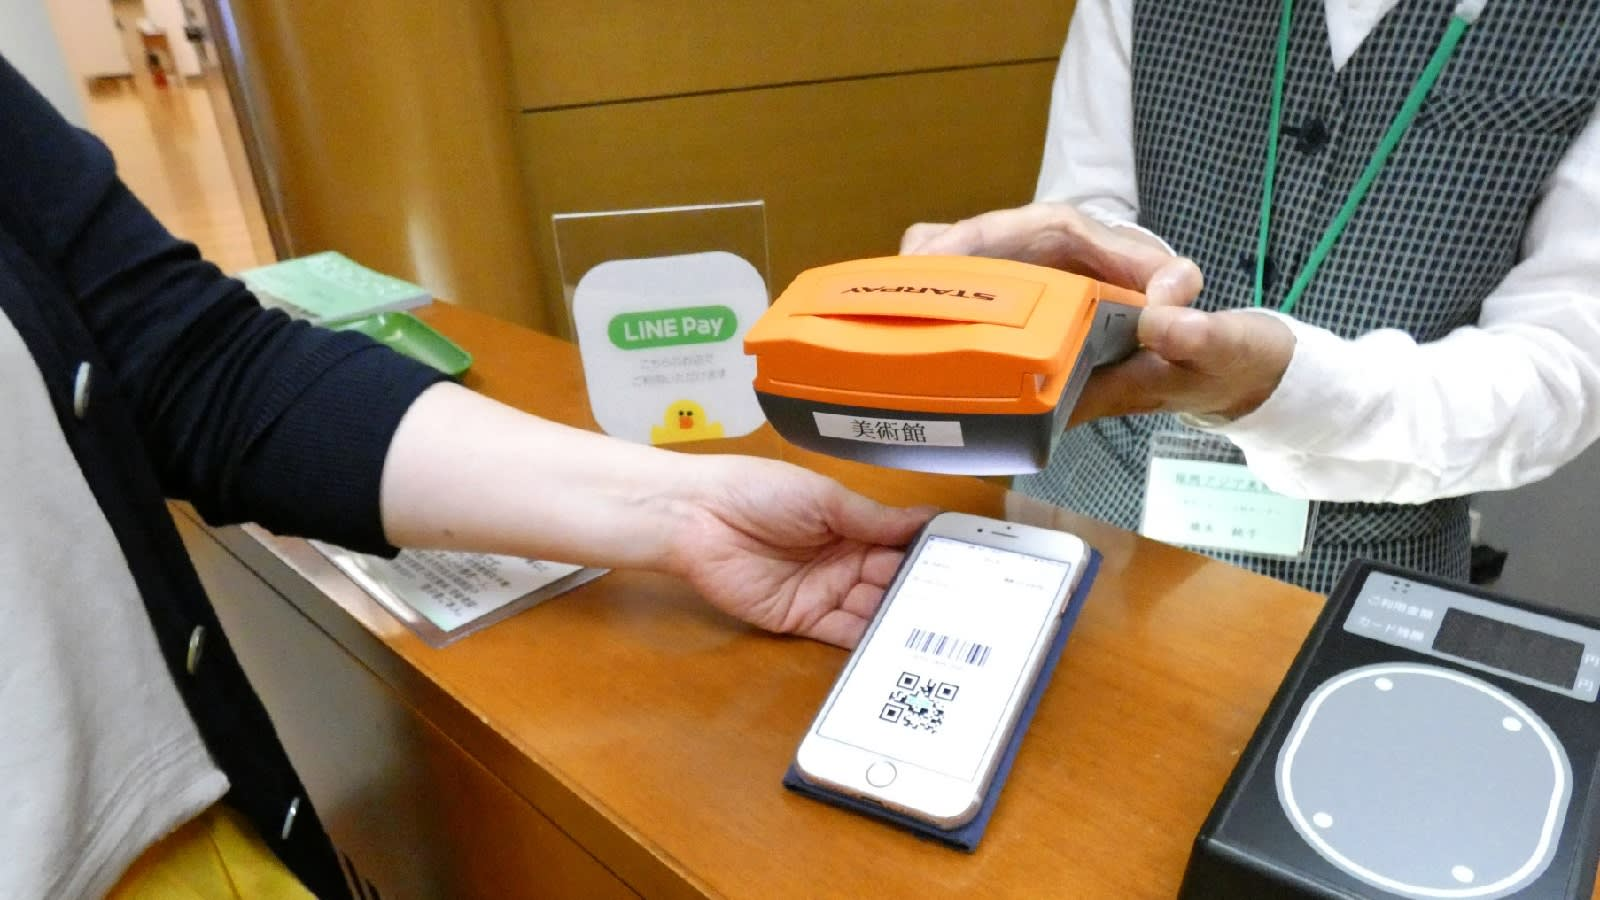 Amazon's and SoftBank's Japanese mobile payment services will use QR codes, as does the existing Line Pay.